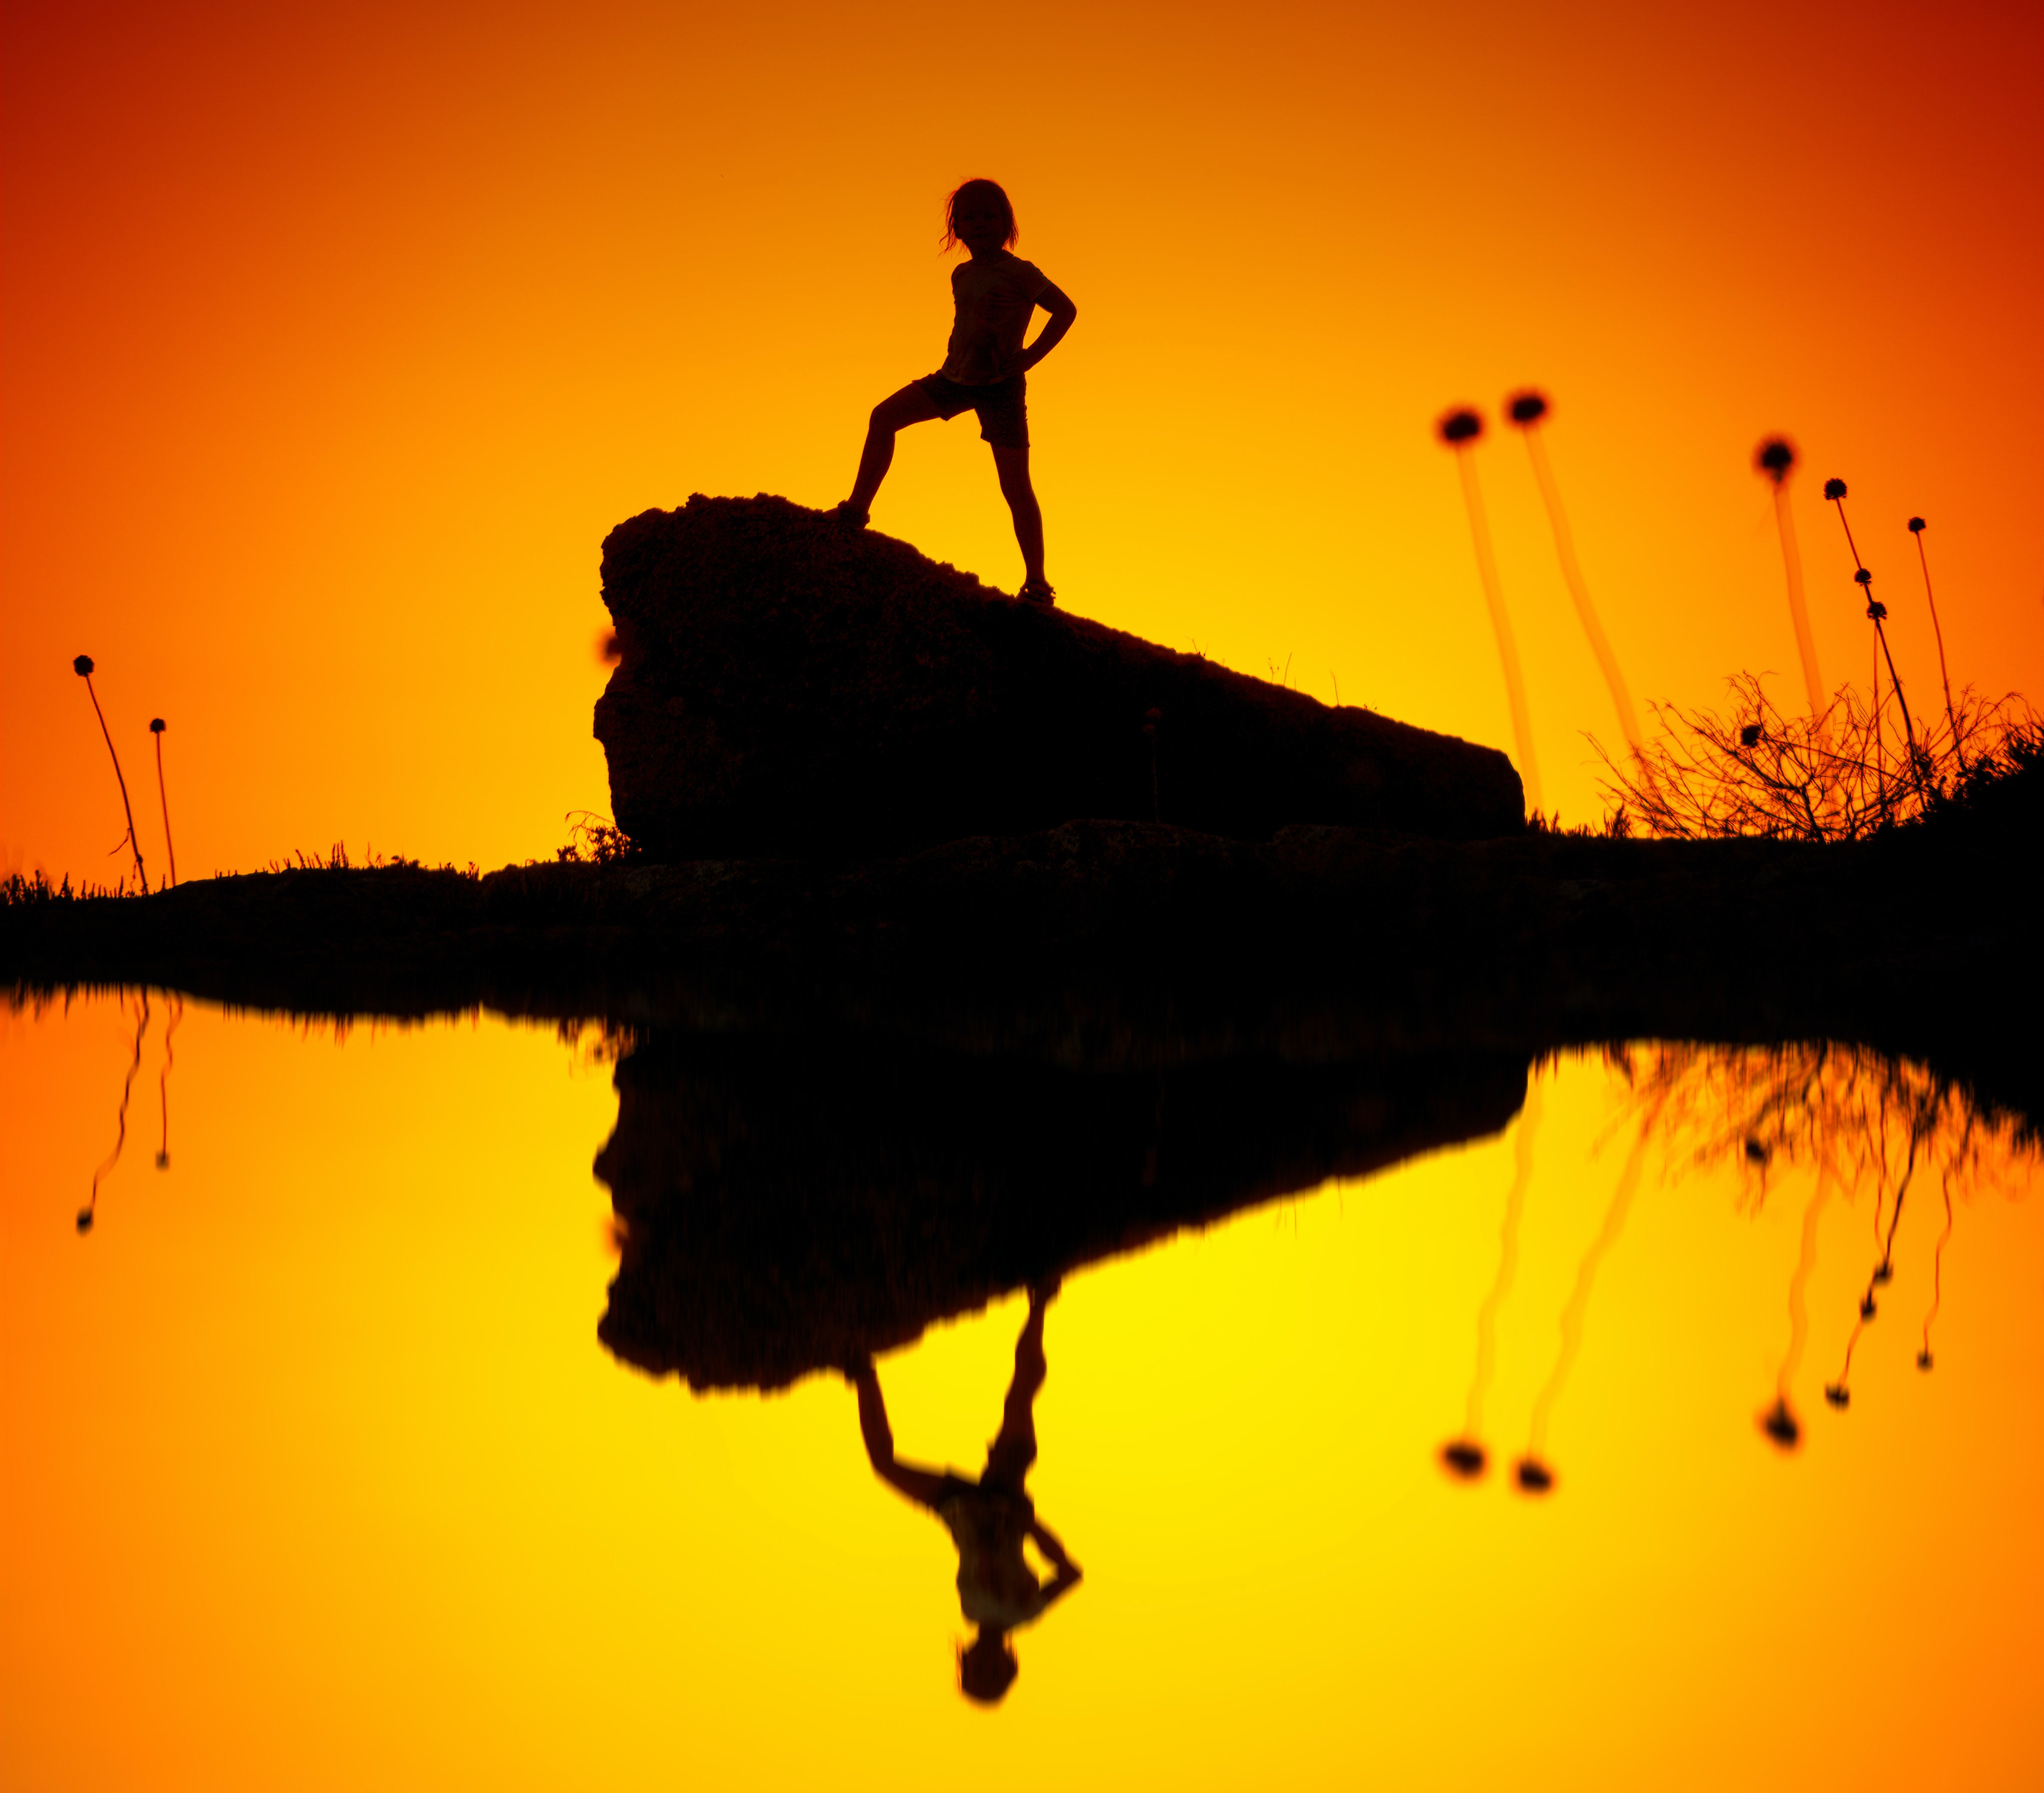 Silhouette of Child Standing on Rock